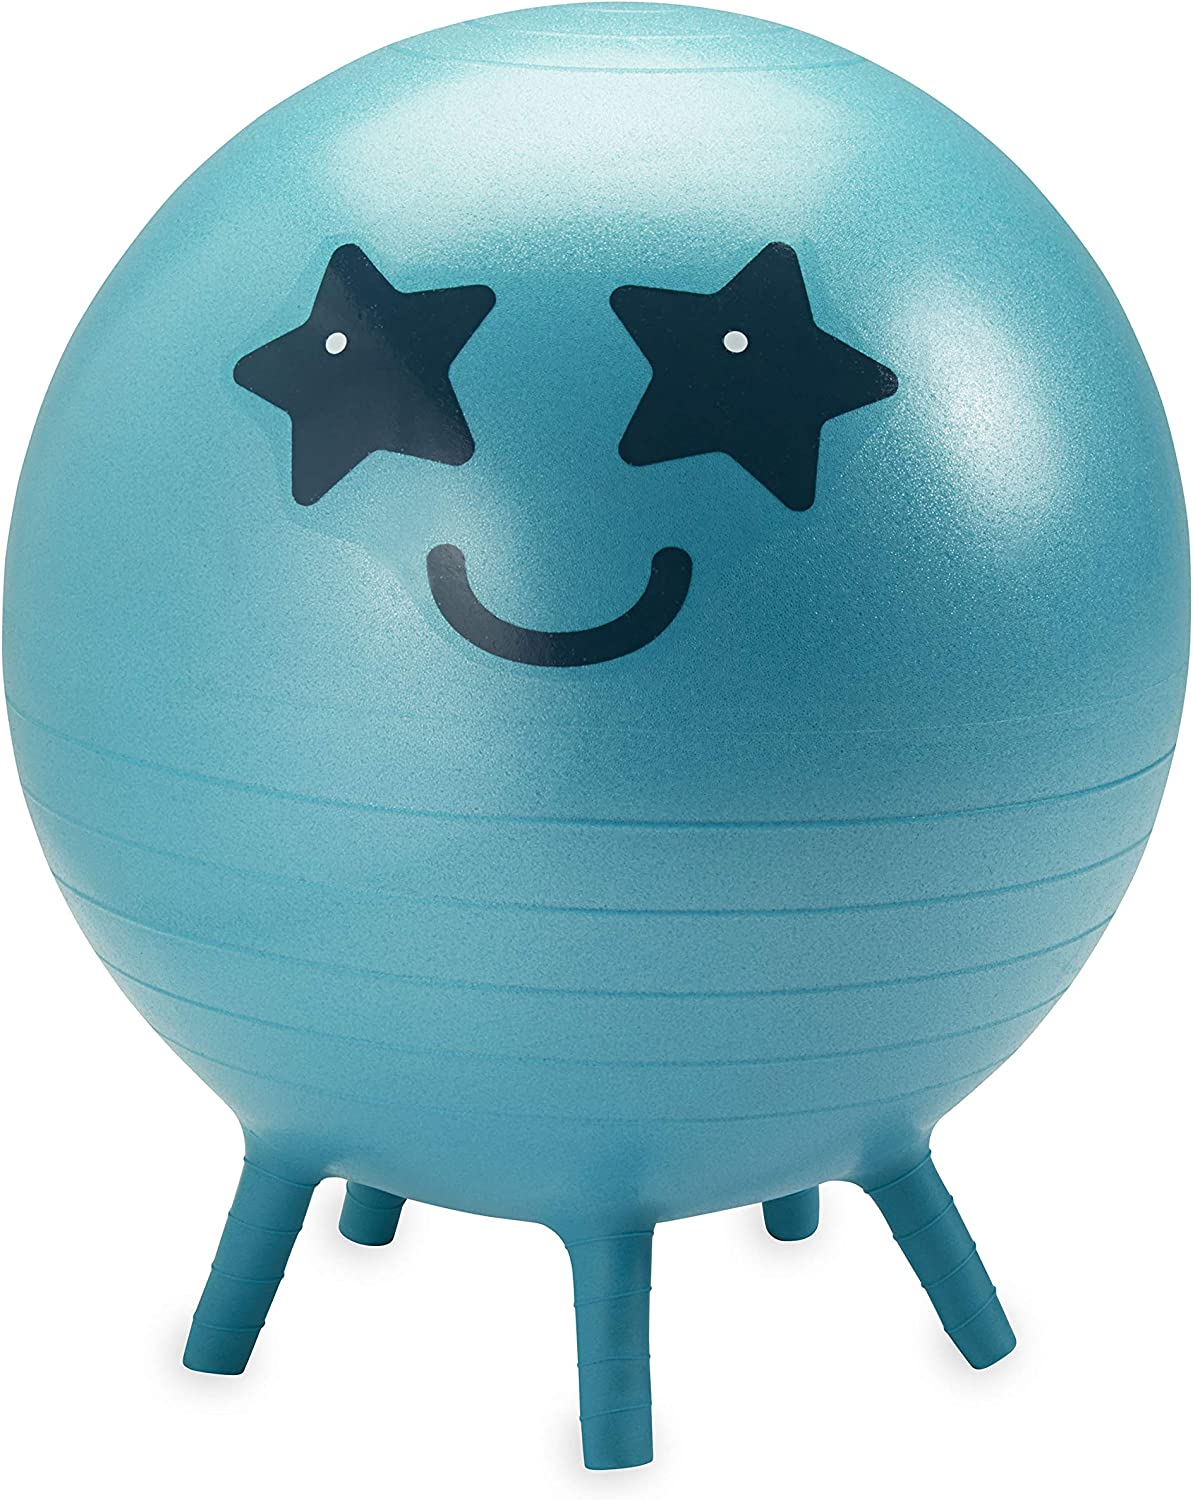 Gaiam Kids Stay-N-Play Children's Balance outlet - Flexible Challenge the lowest price of Japan ☆ School Ball